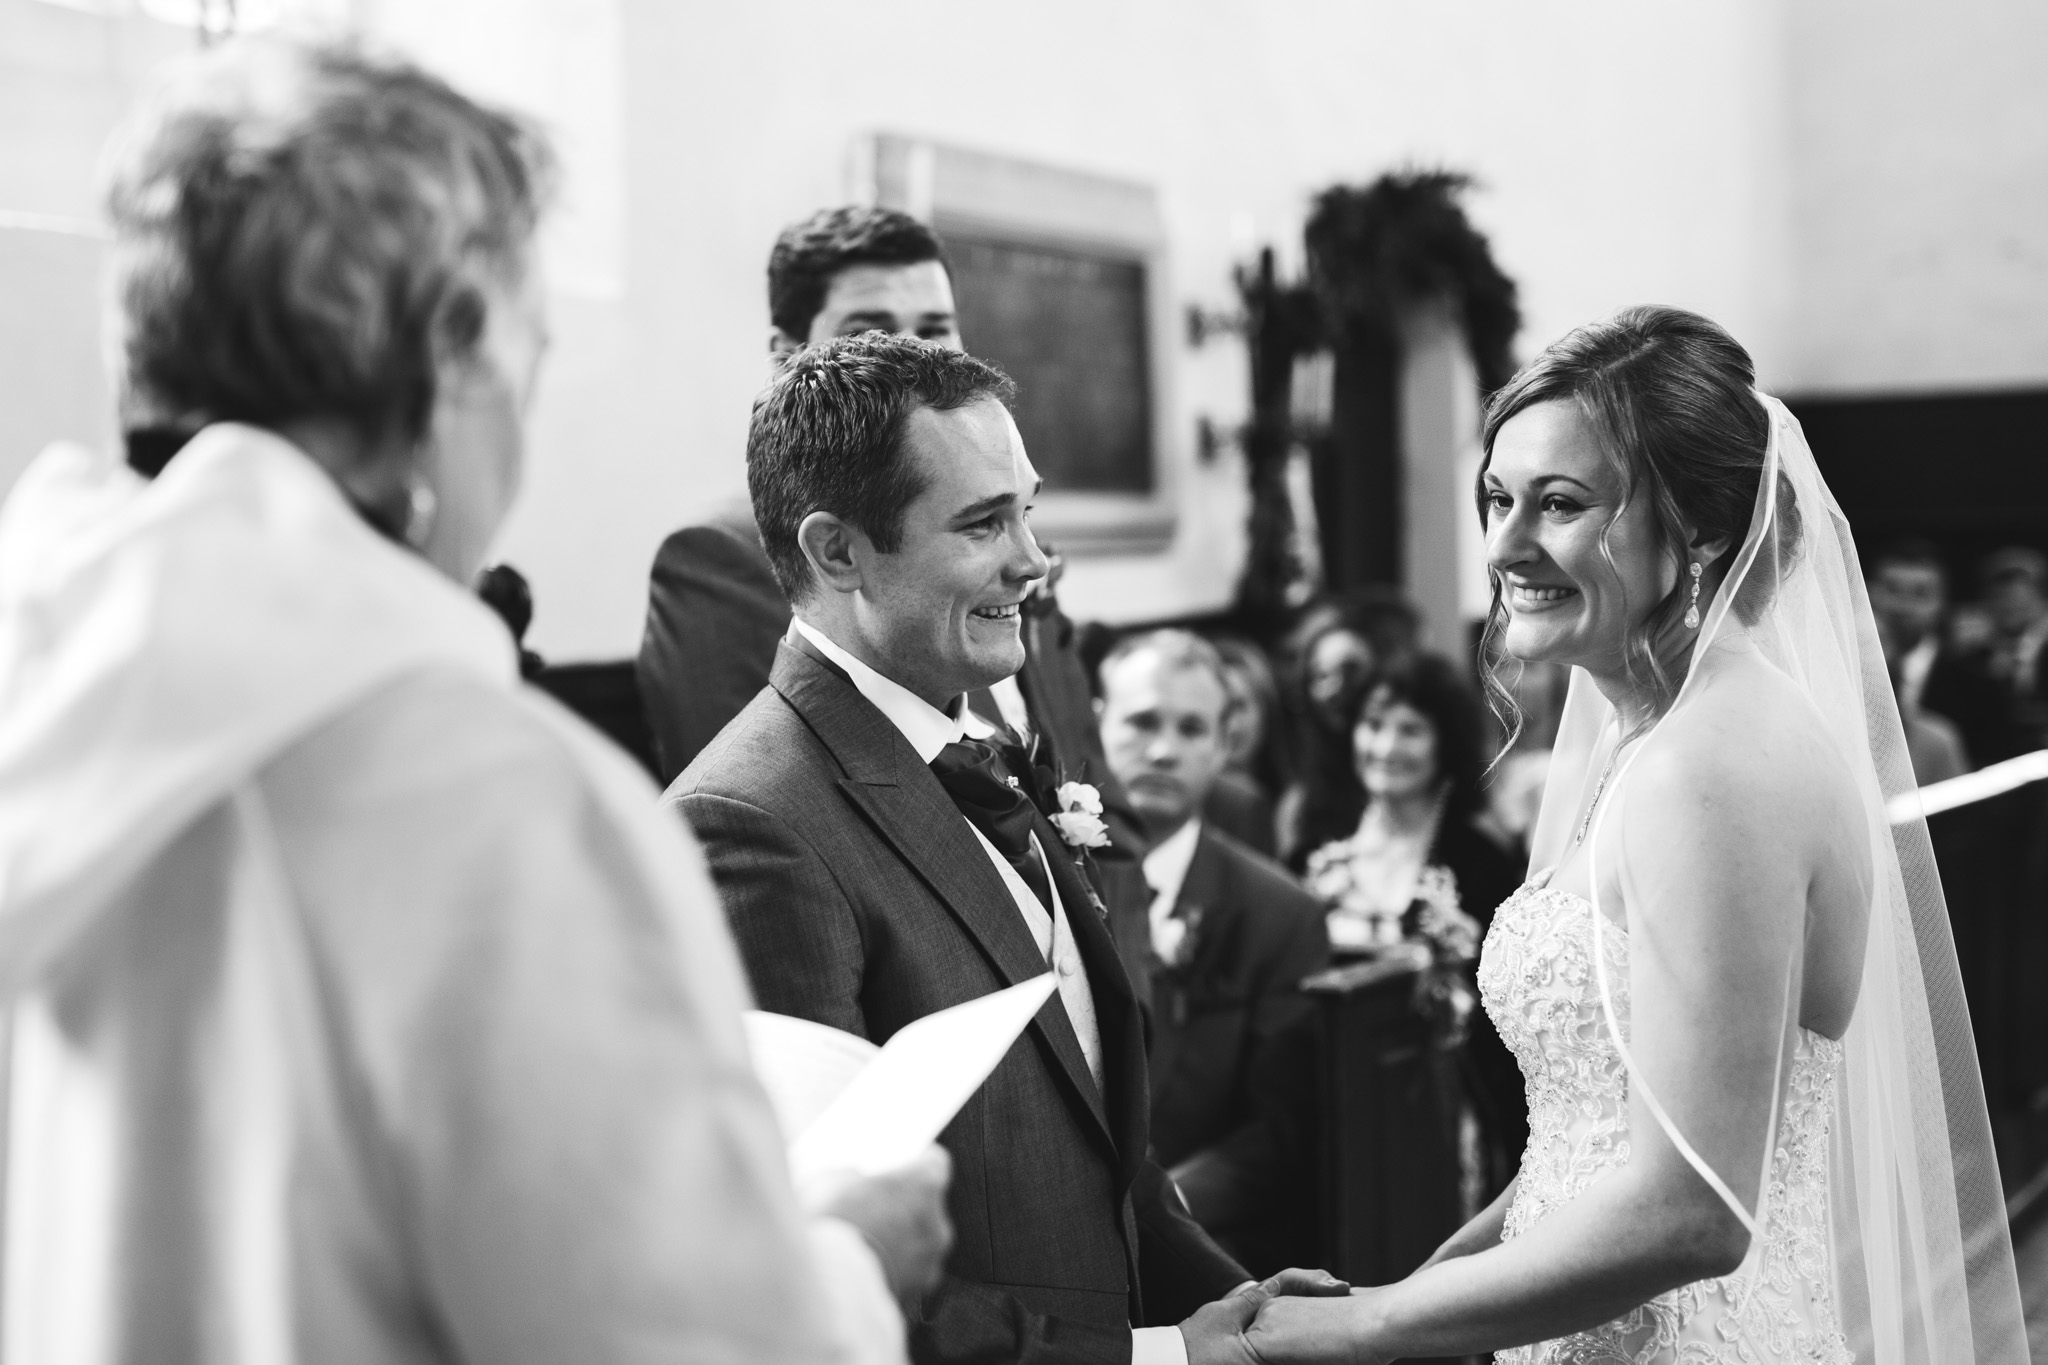 cat-lane-weddings__chicheley-hall-wedding-photography__clw__1314__C5A4165.jpg